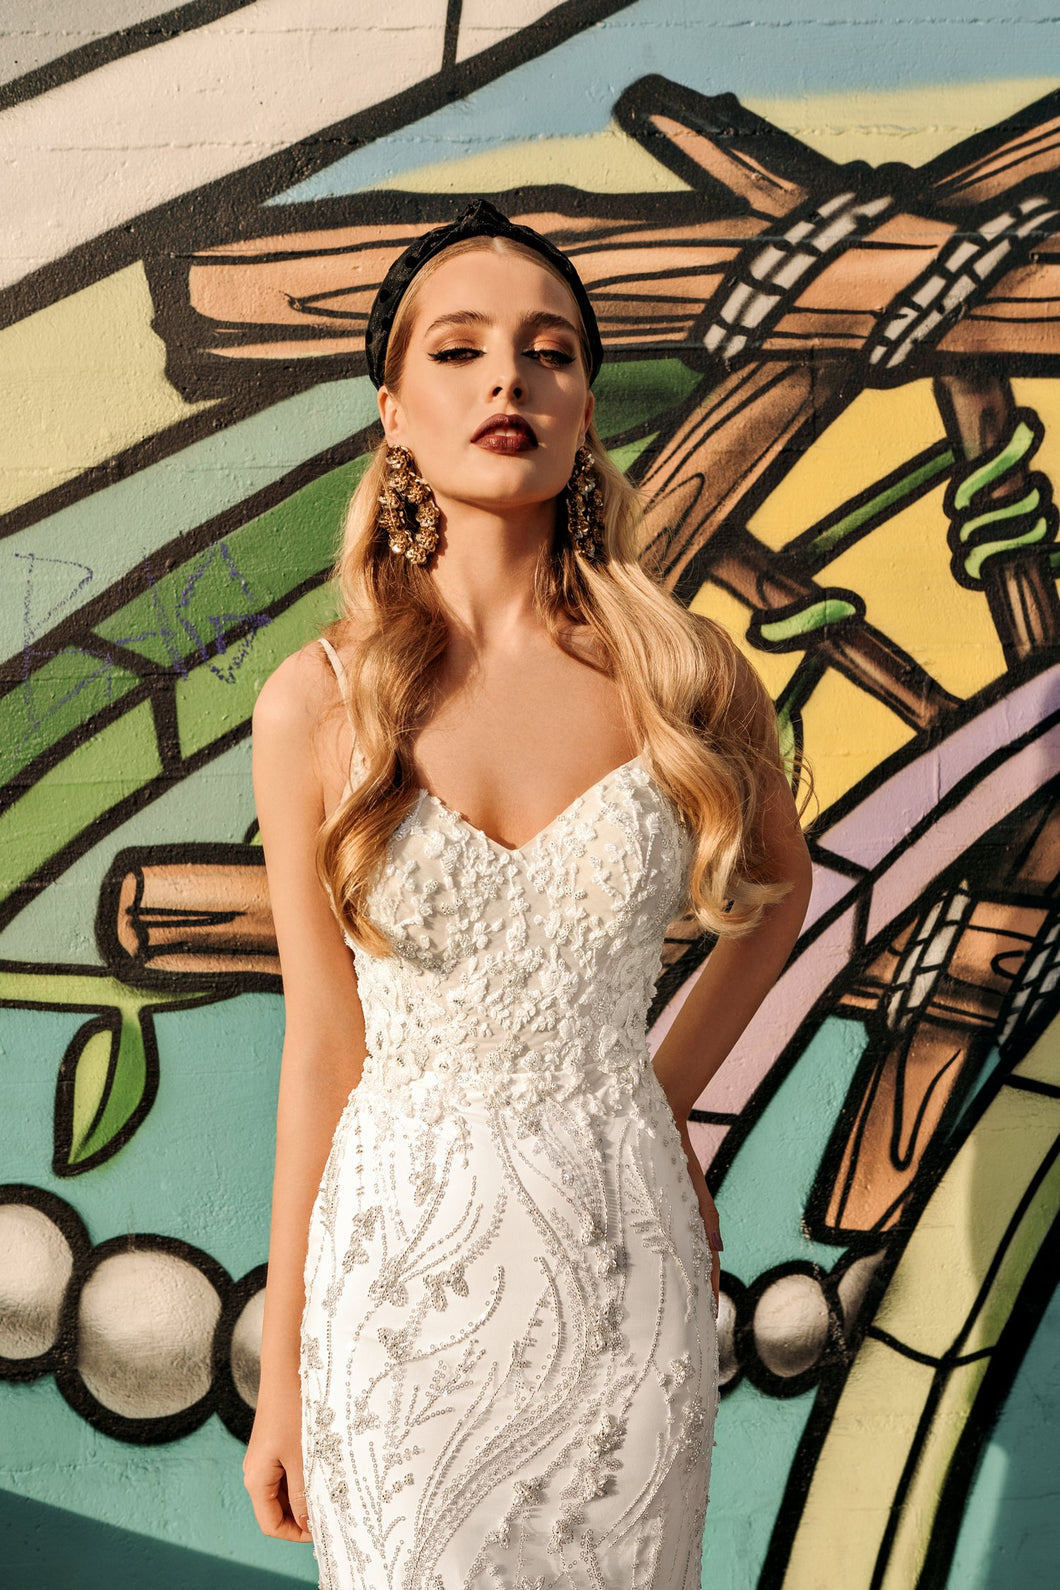 Los Angeles 'Ingrid' Elly Haute Couture RTW 100-460 Ready To Wear European Bridal Wedding Gown Designer Philippines